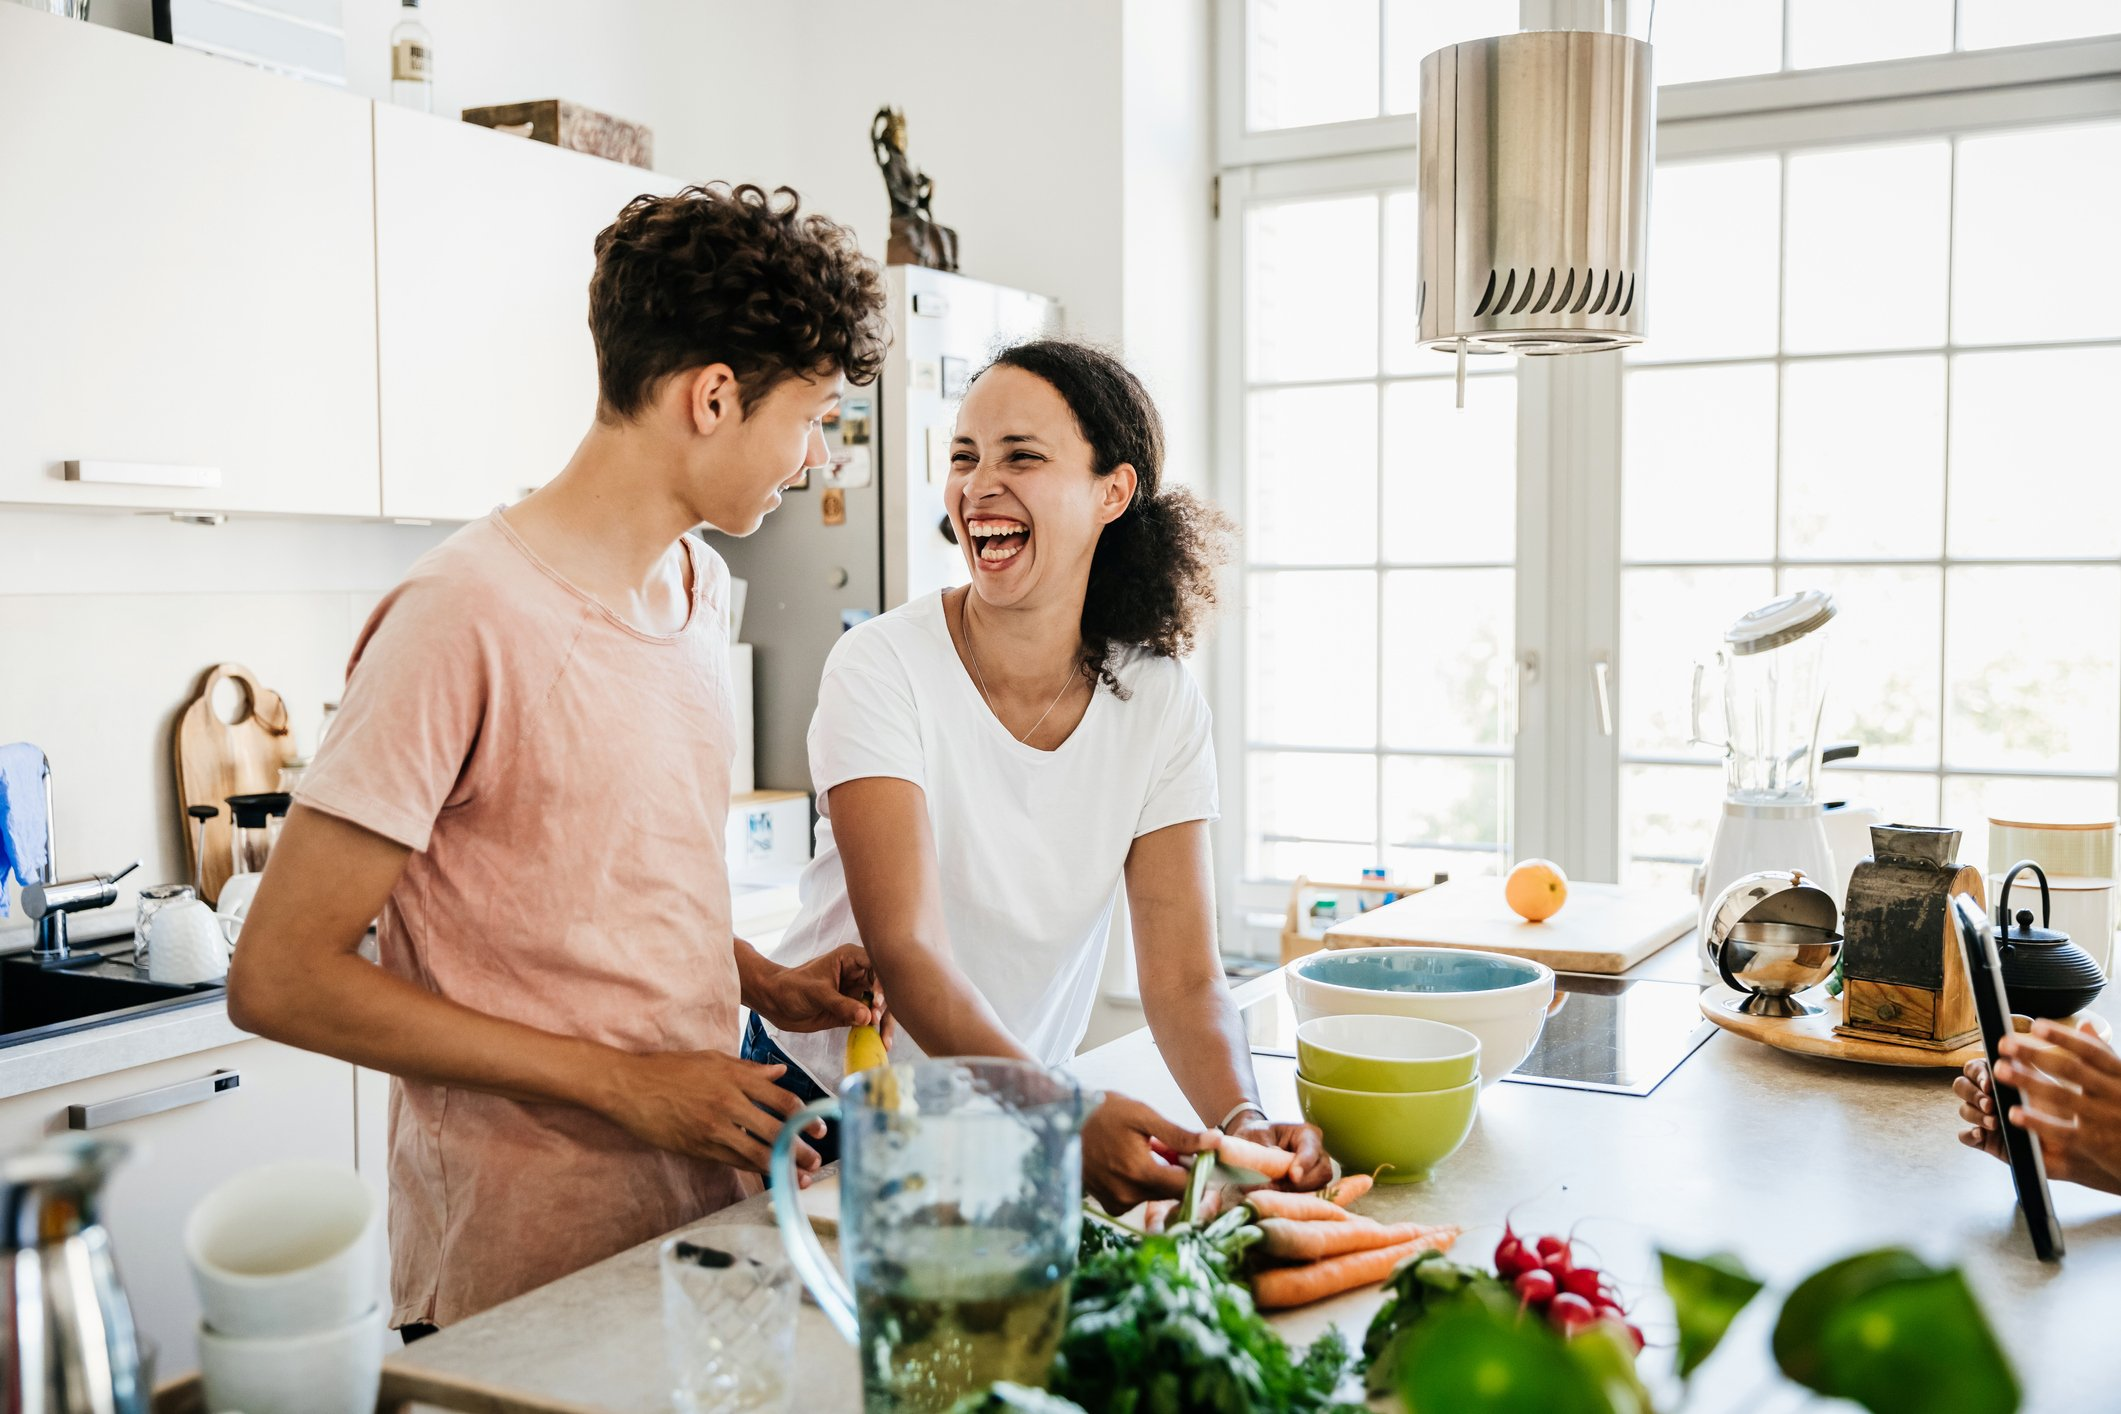 A single mom at home in the kitchen, laughing while preparing some lunch with her son.  Photo: Getty Images